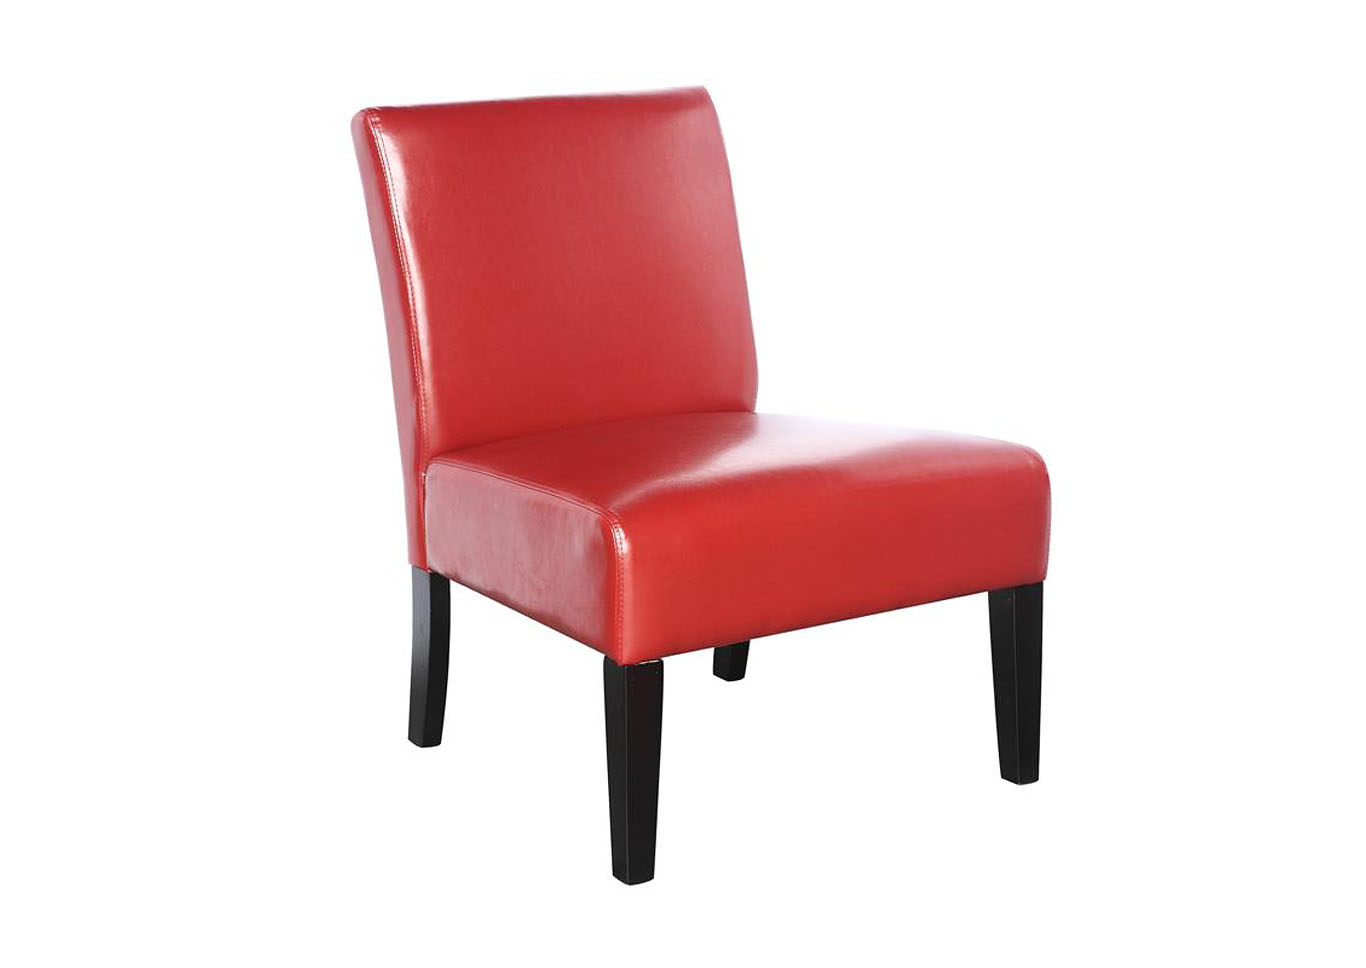 Gemini Armless Club Chair - Red,Instore